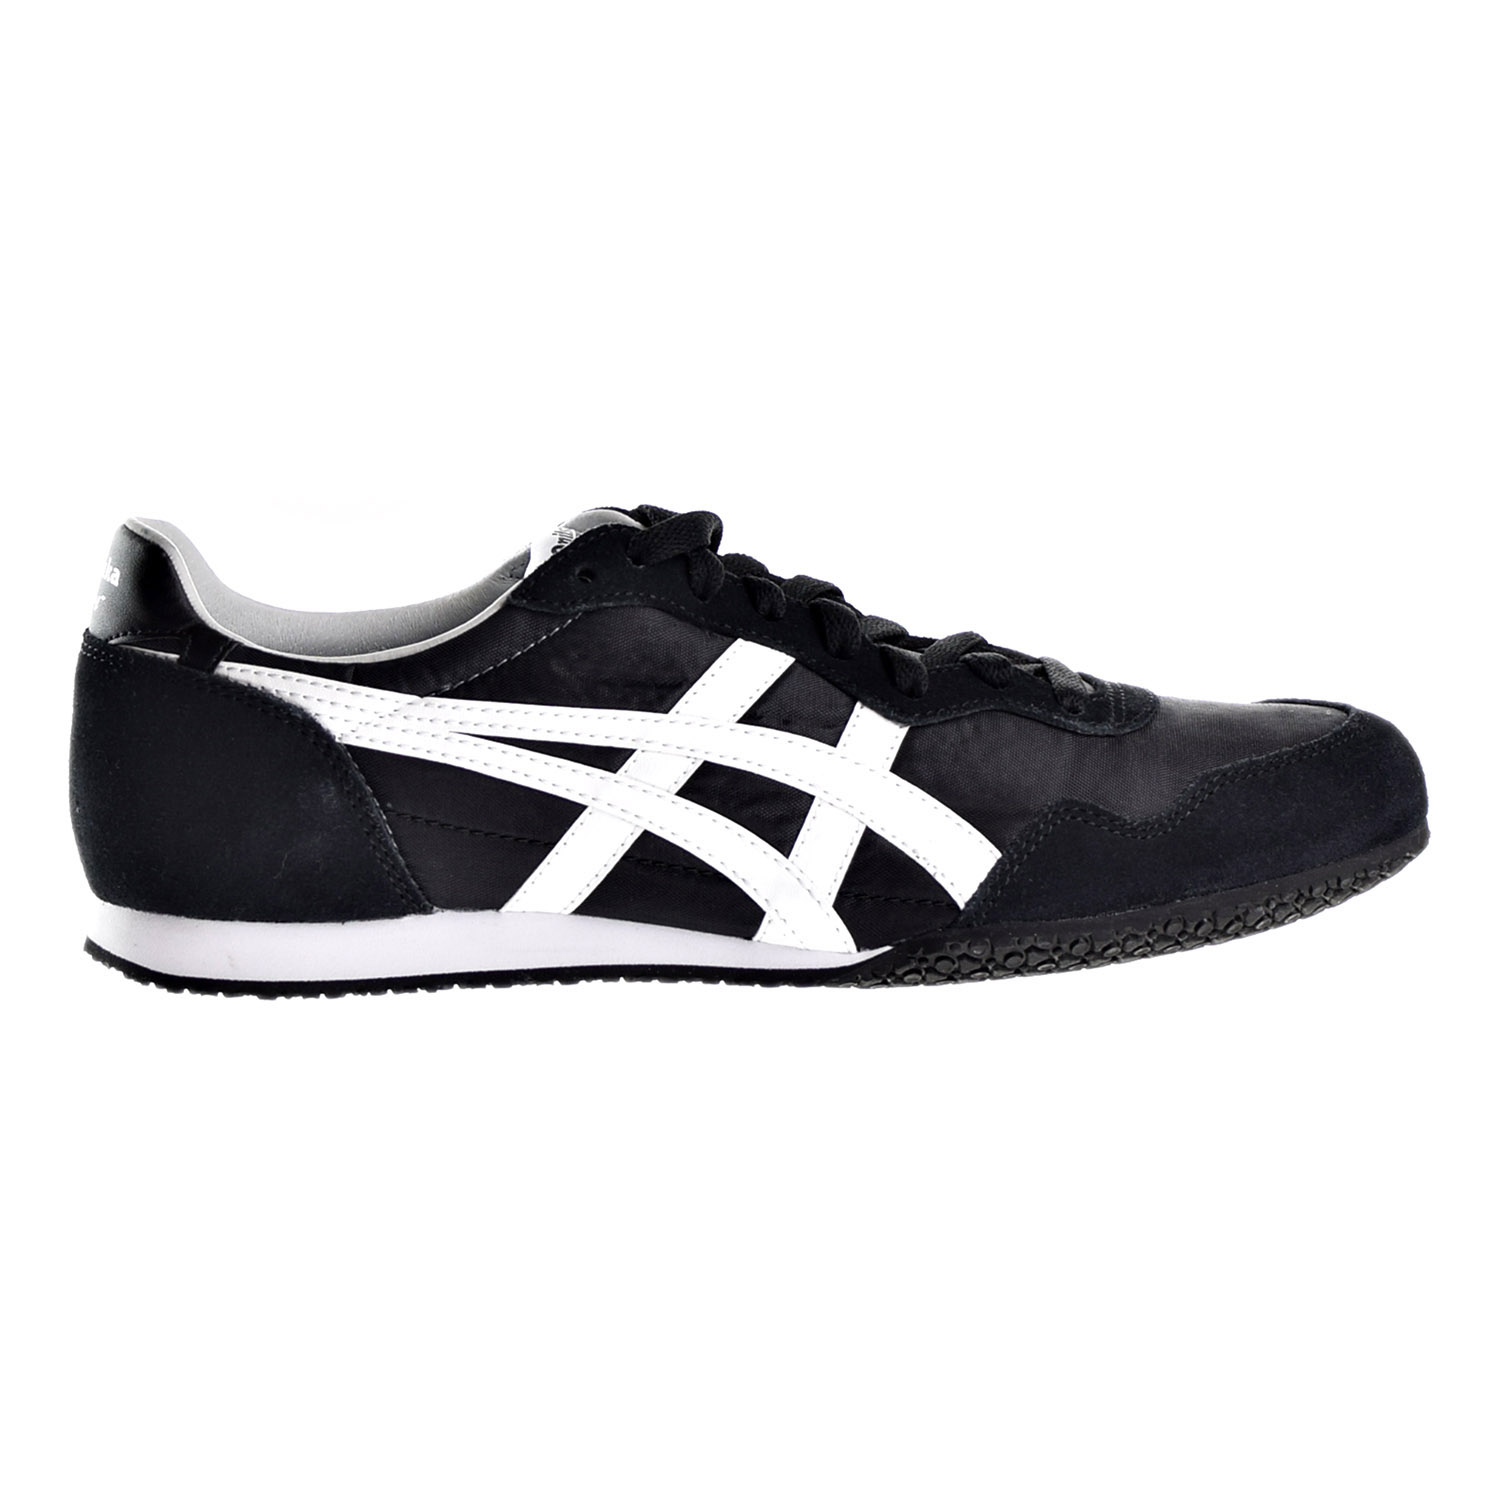 the latest 8bda9 d393f Onitsuka Tiger Serrano Men's Shoes Black/White d109l-9001